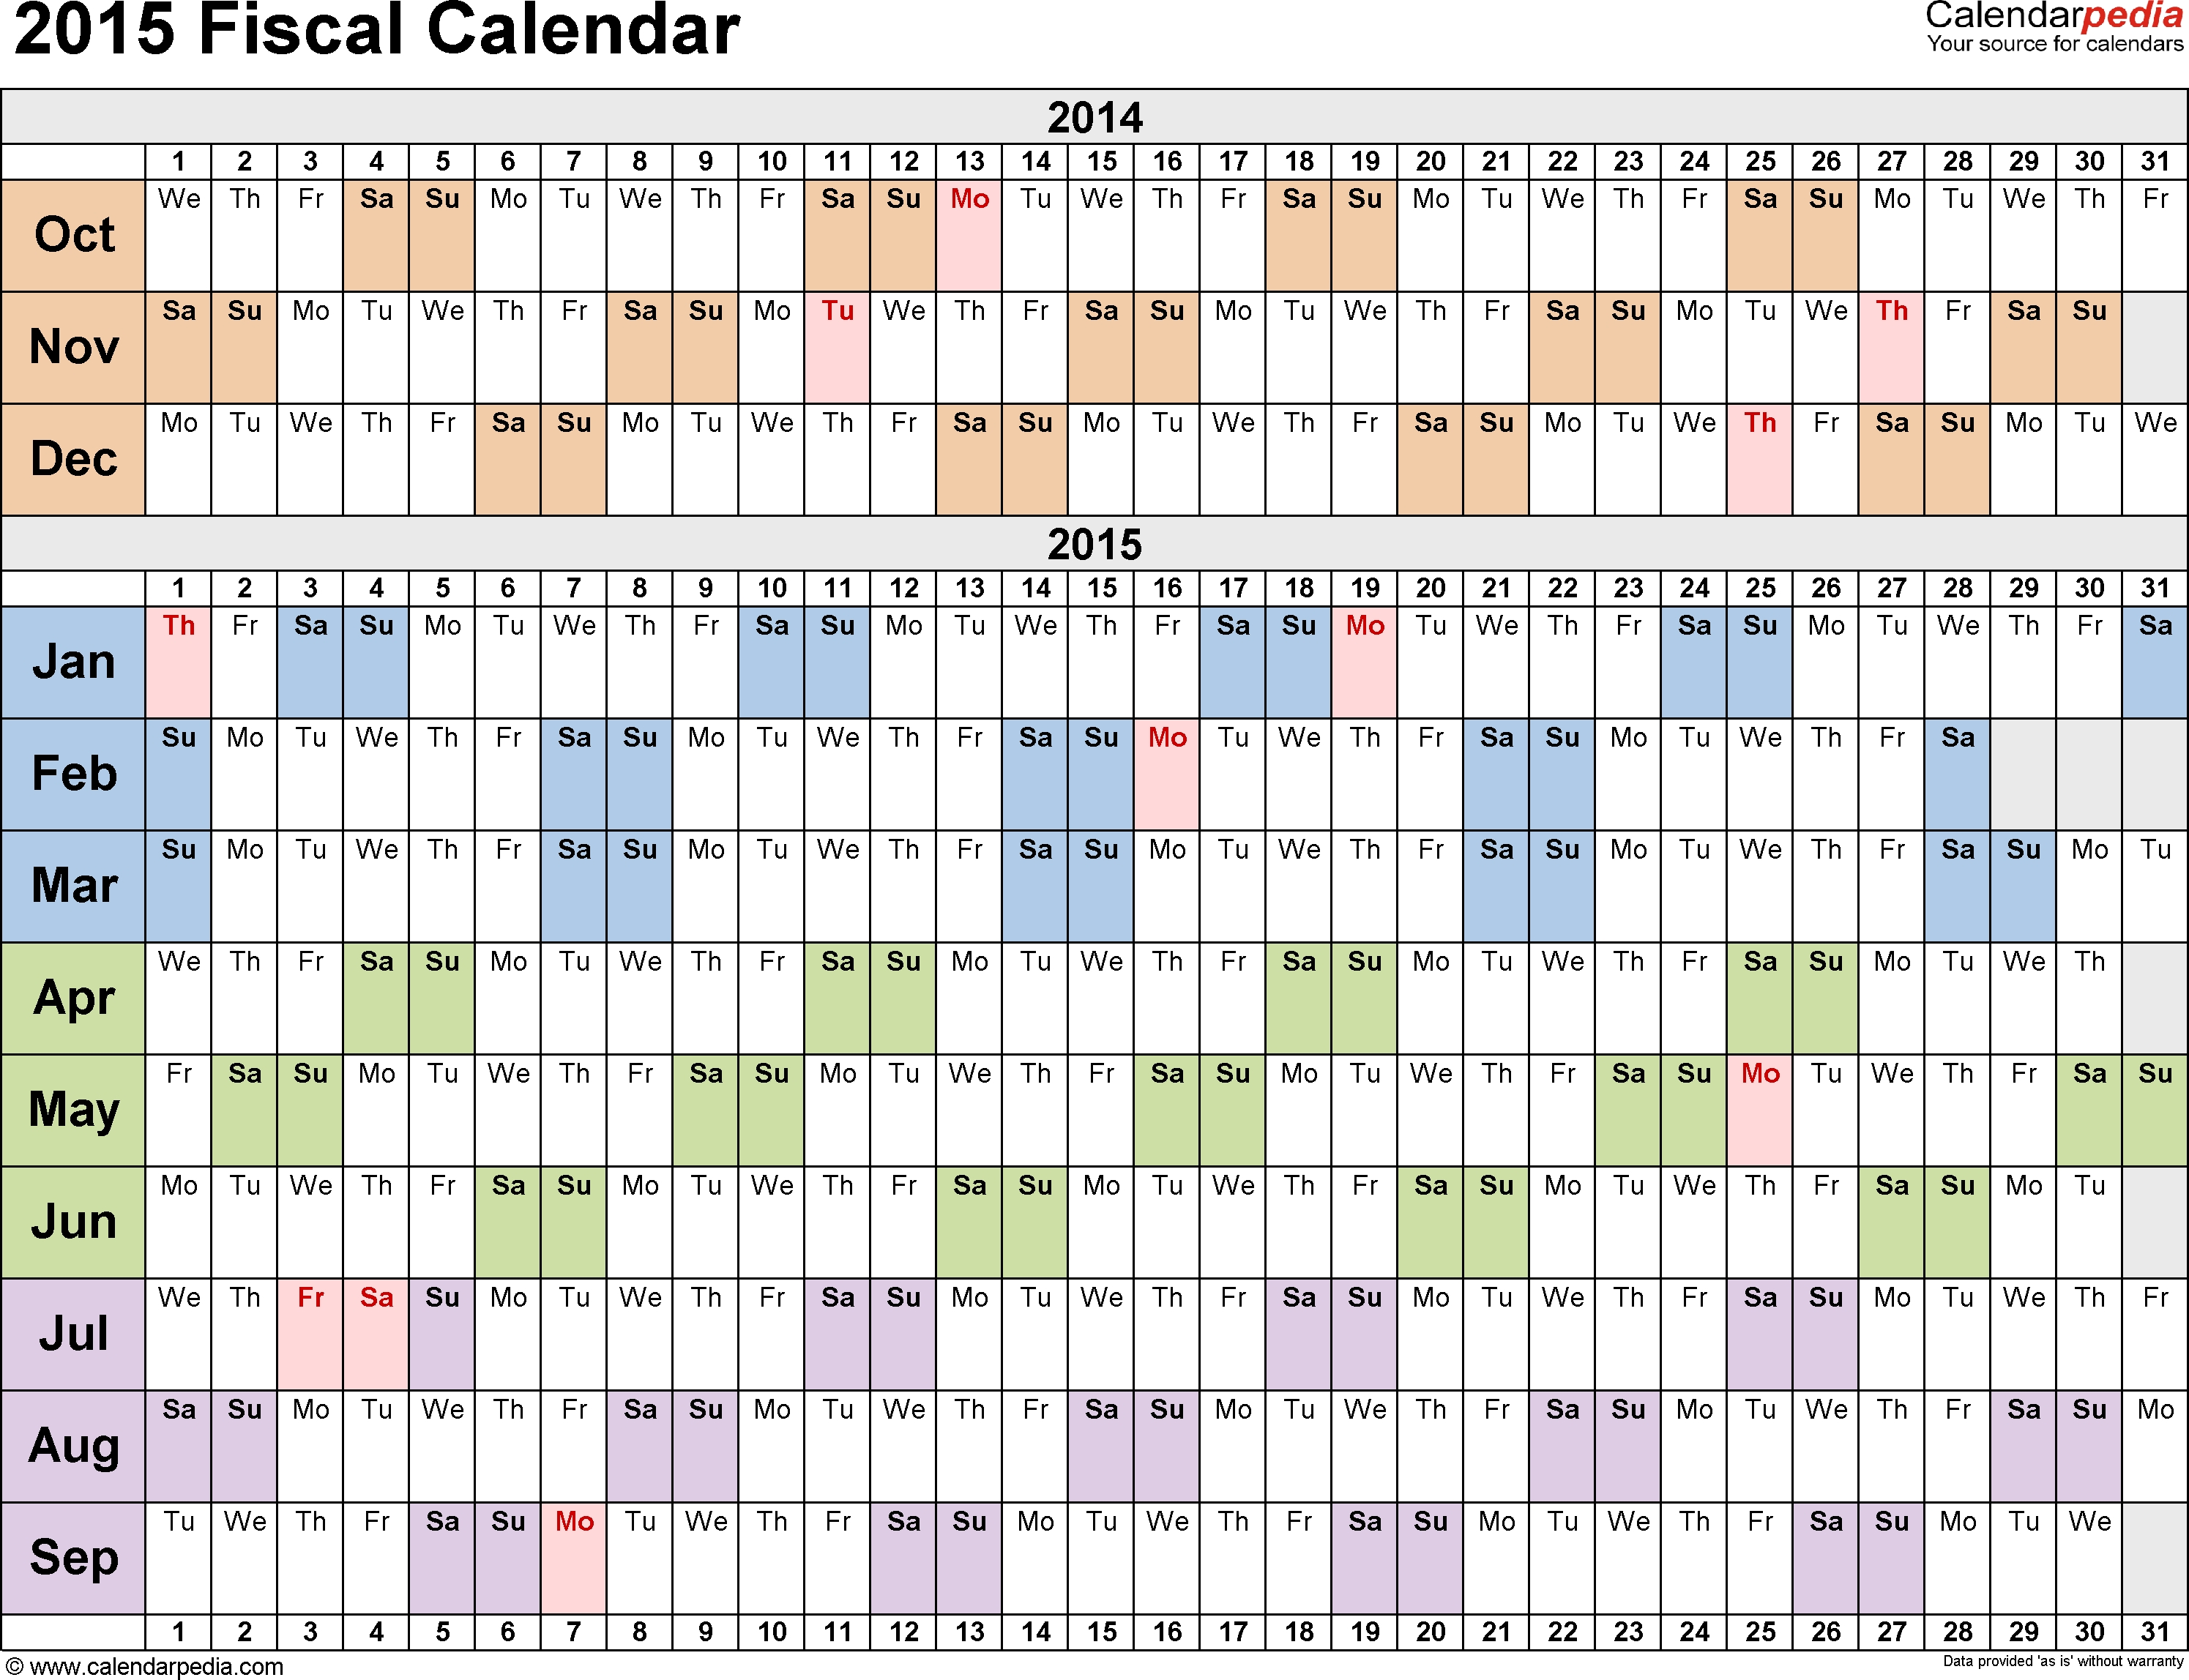 Fiscal Week Calendar 2015 - Colona.rsd7 with 2020 4-4-5 Fiscal Accouting Calendar